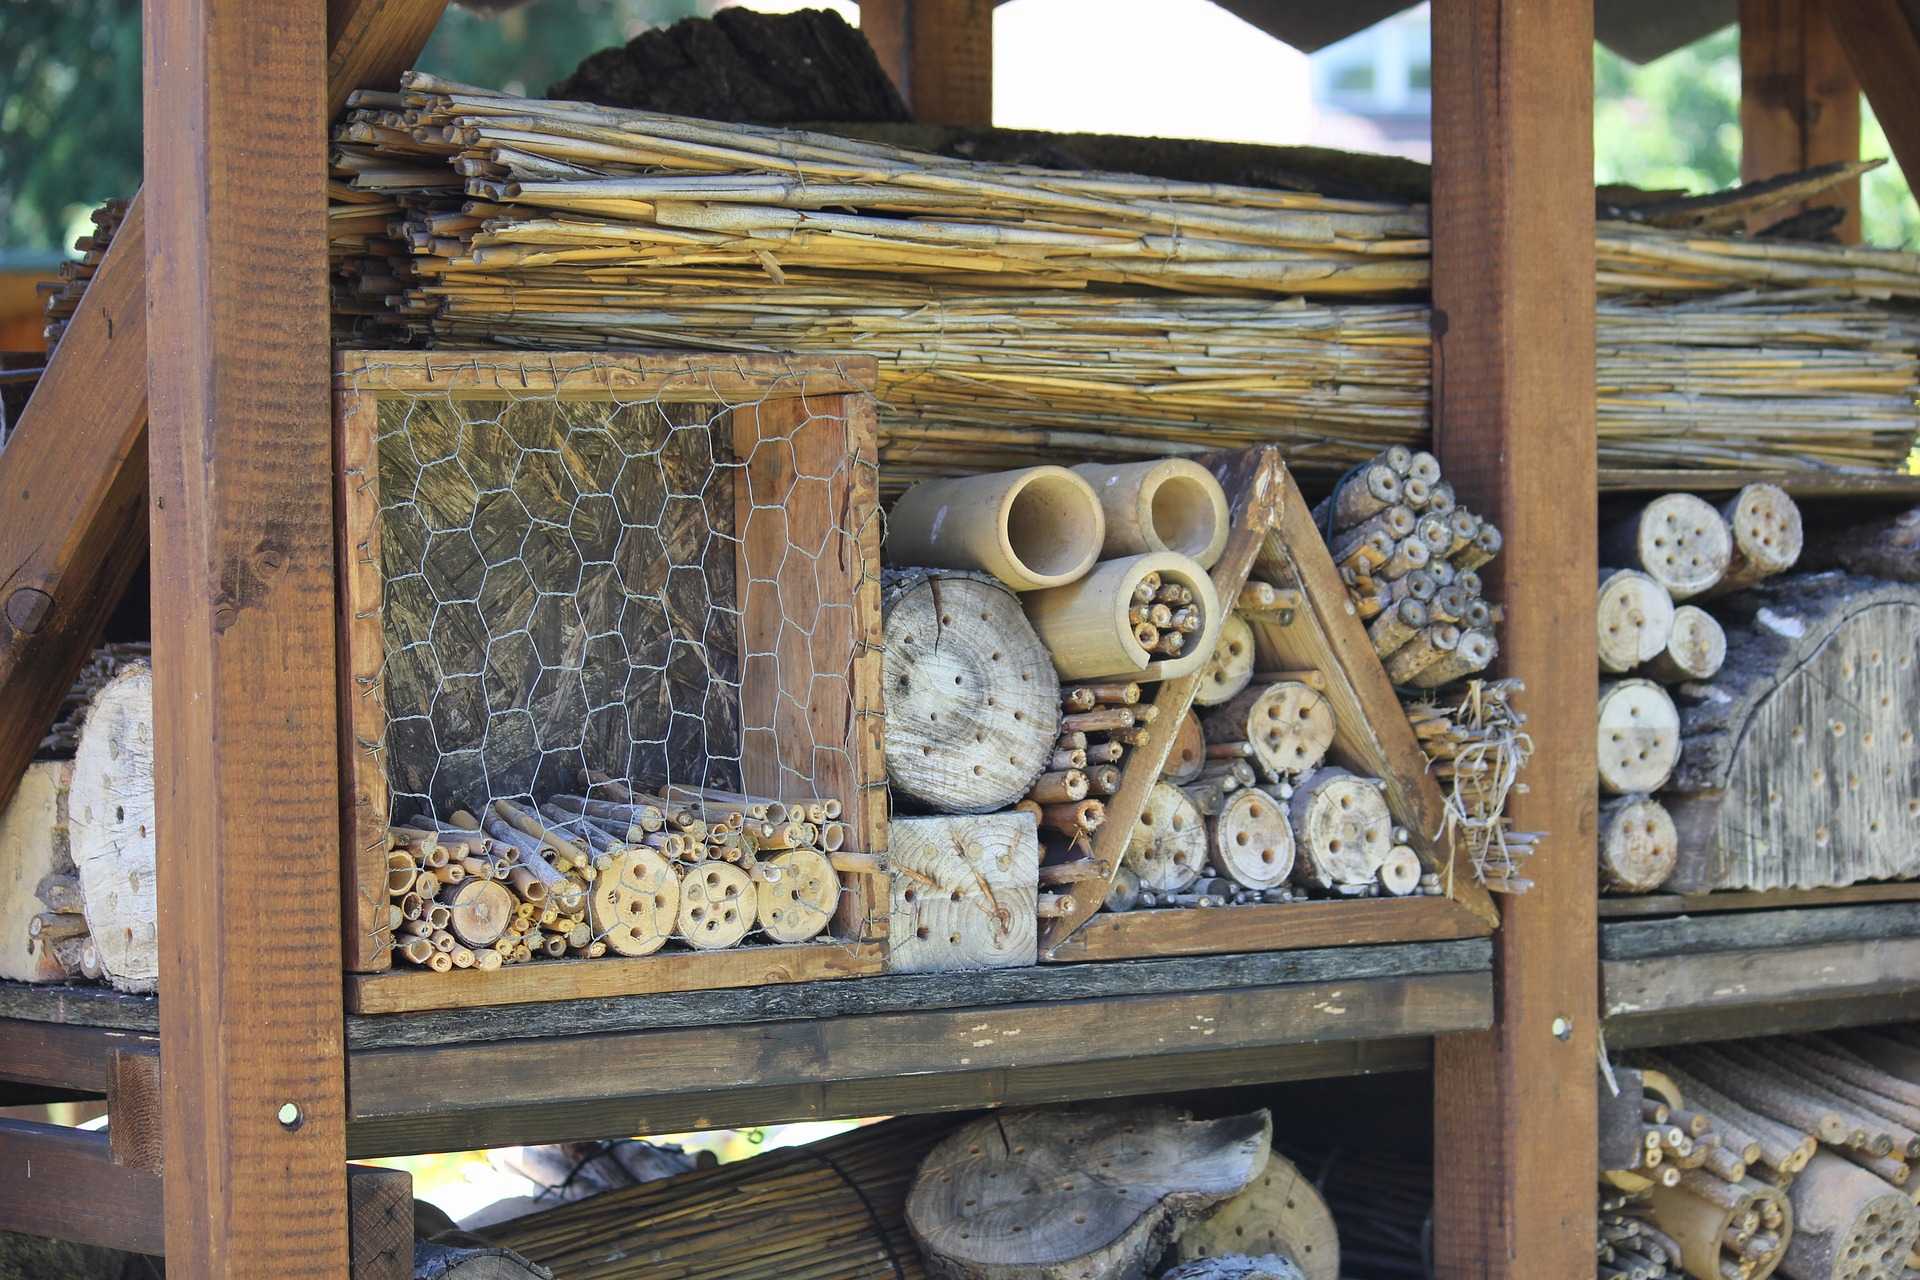 insect-hotel-3571258_1920